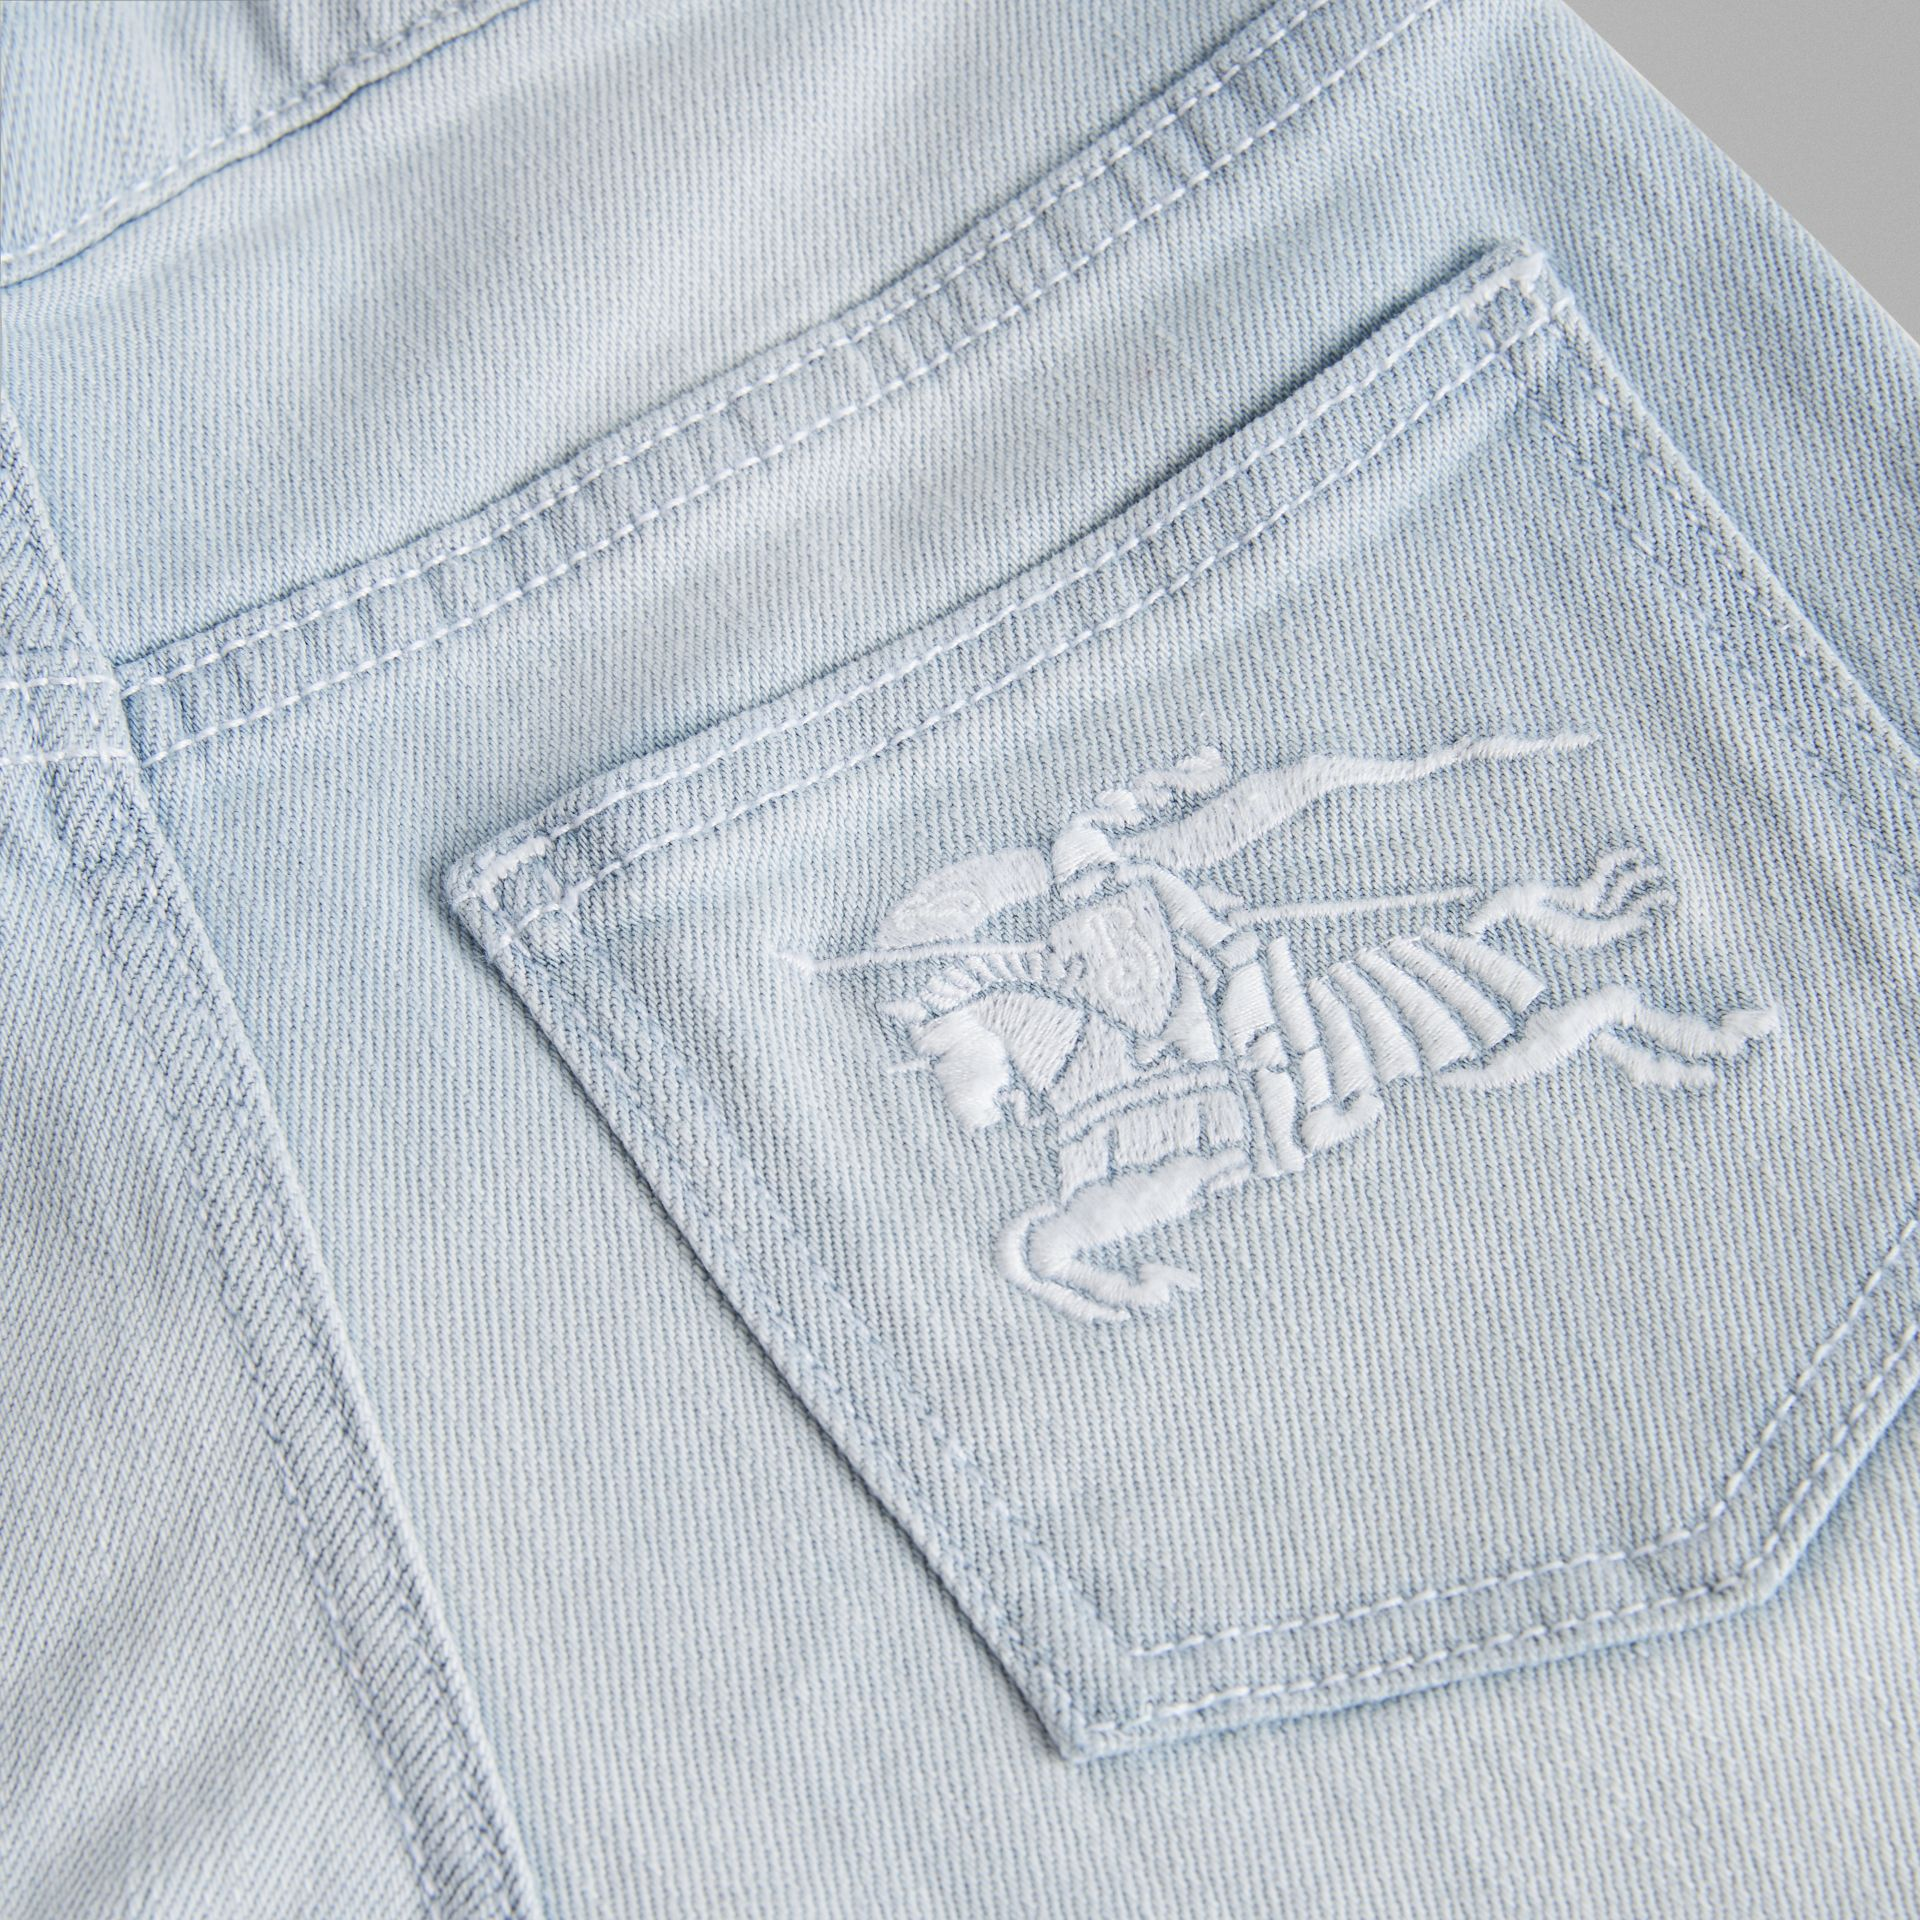 Relaxed Fit Bleached Jeans in Light Blue | Burberry - gallery image 1